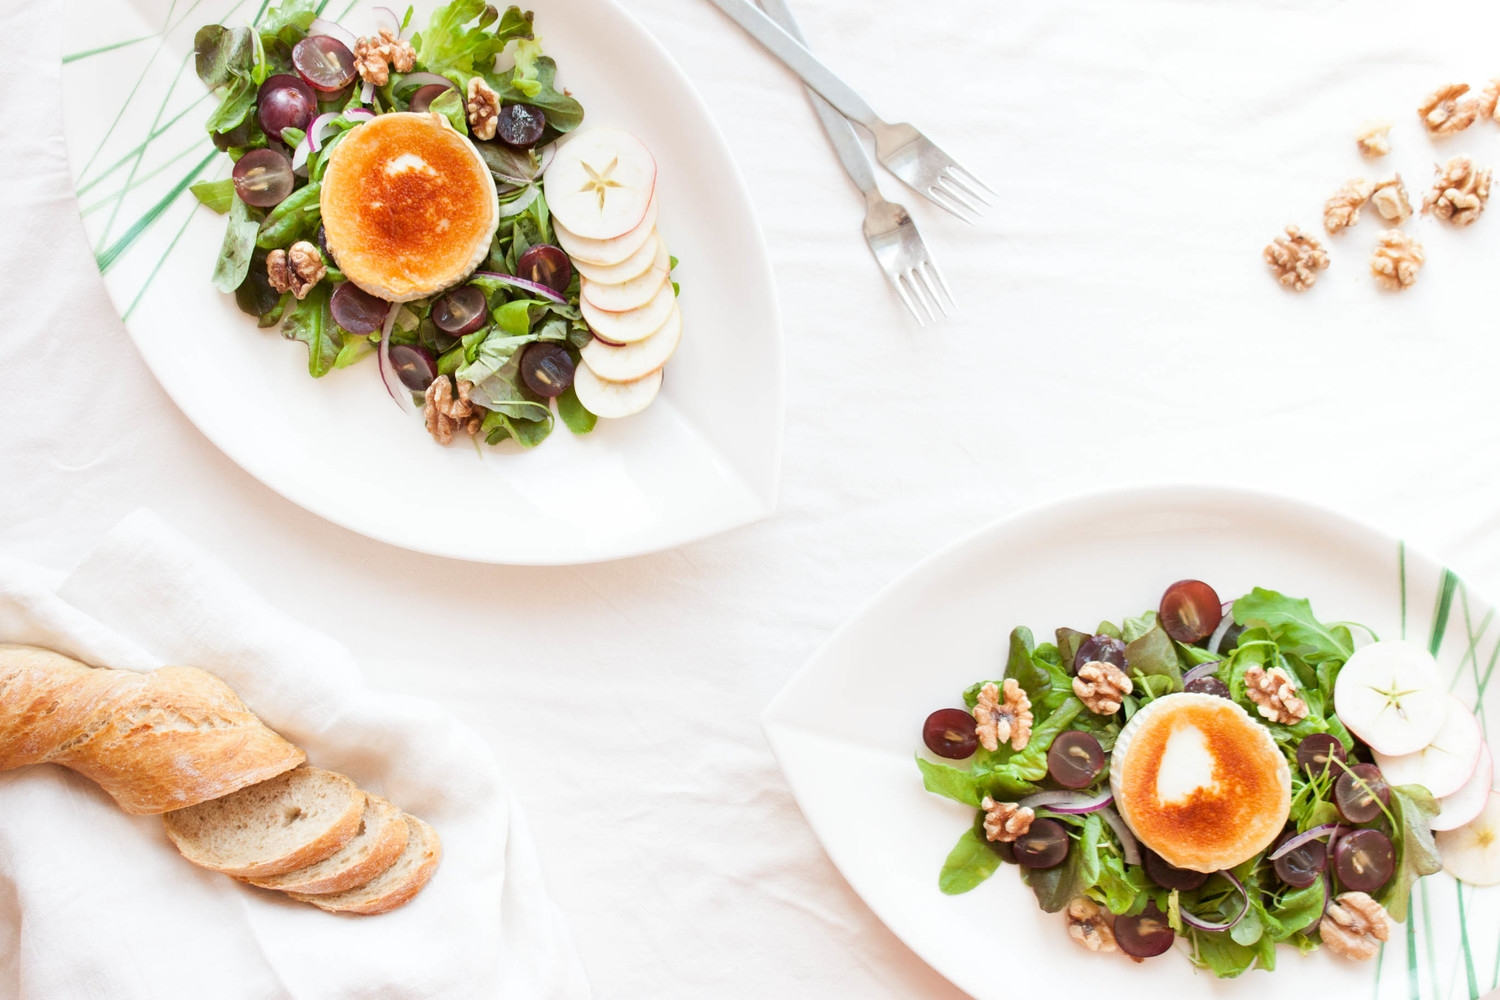 Warm Chèvre Salad with Grapes, Heirloom Apples, & Walnuts | My Blue&White Kitchen